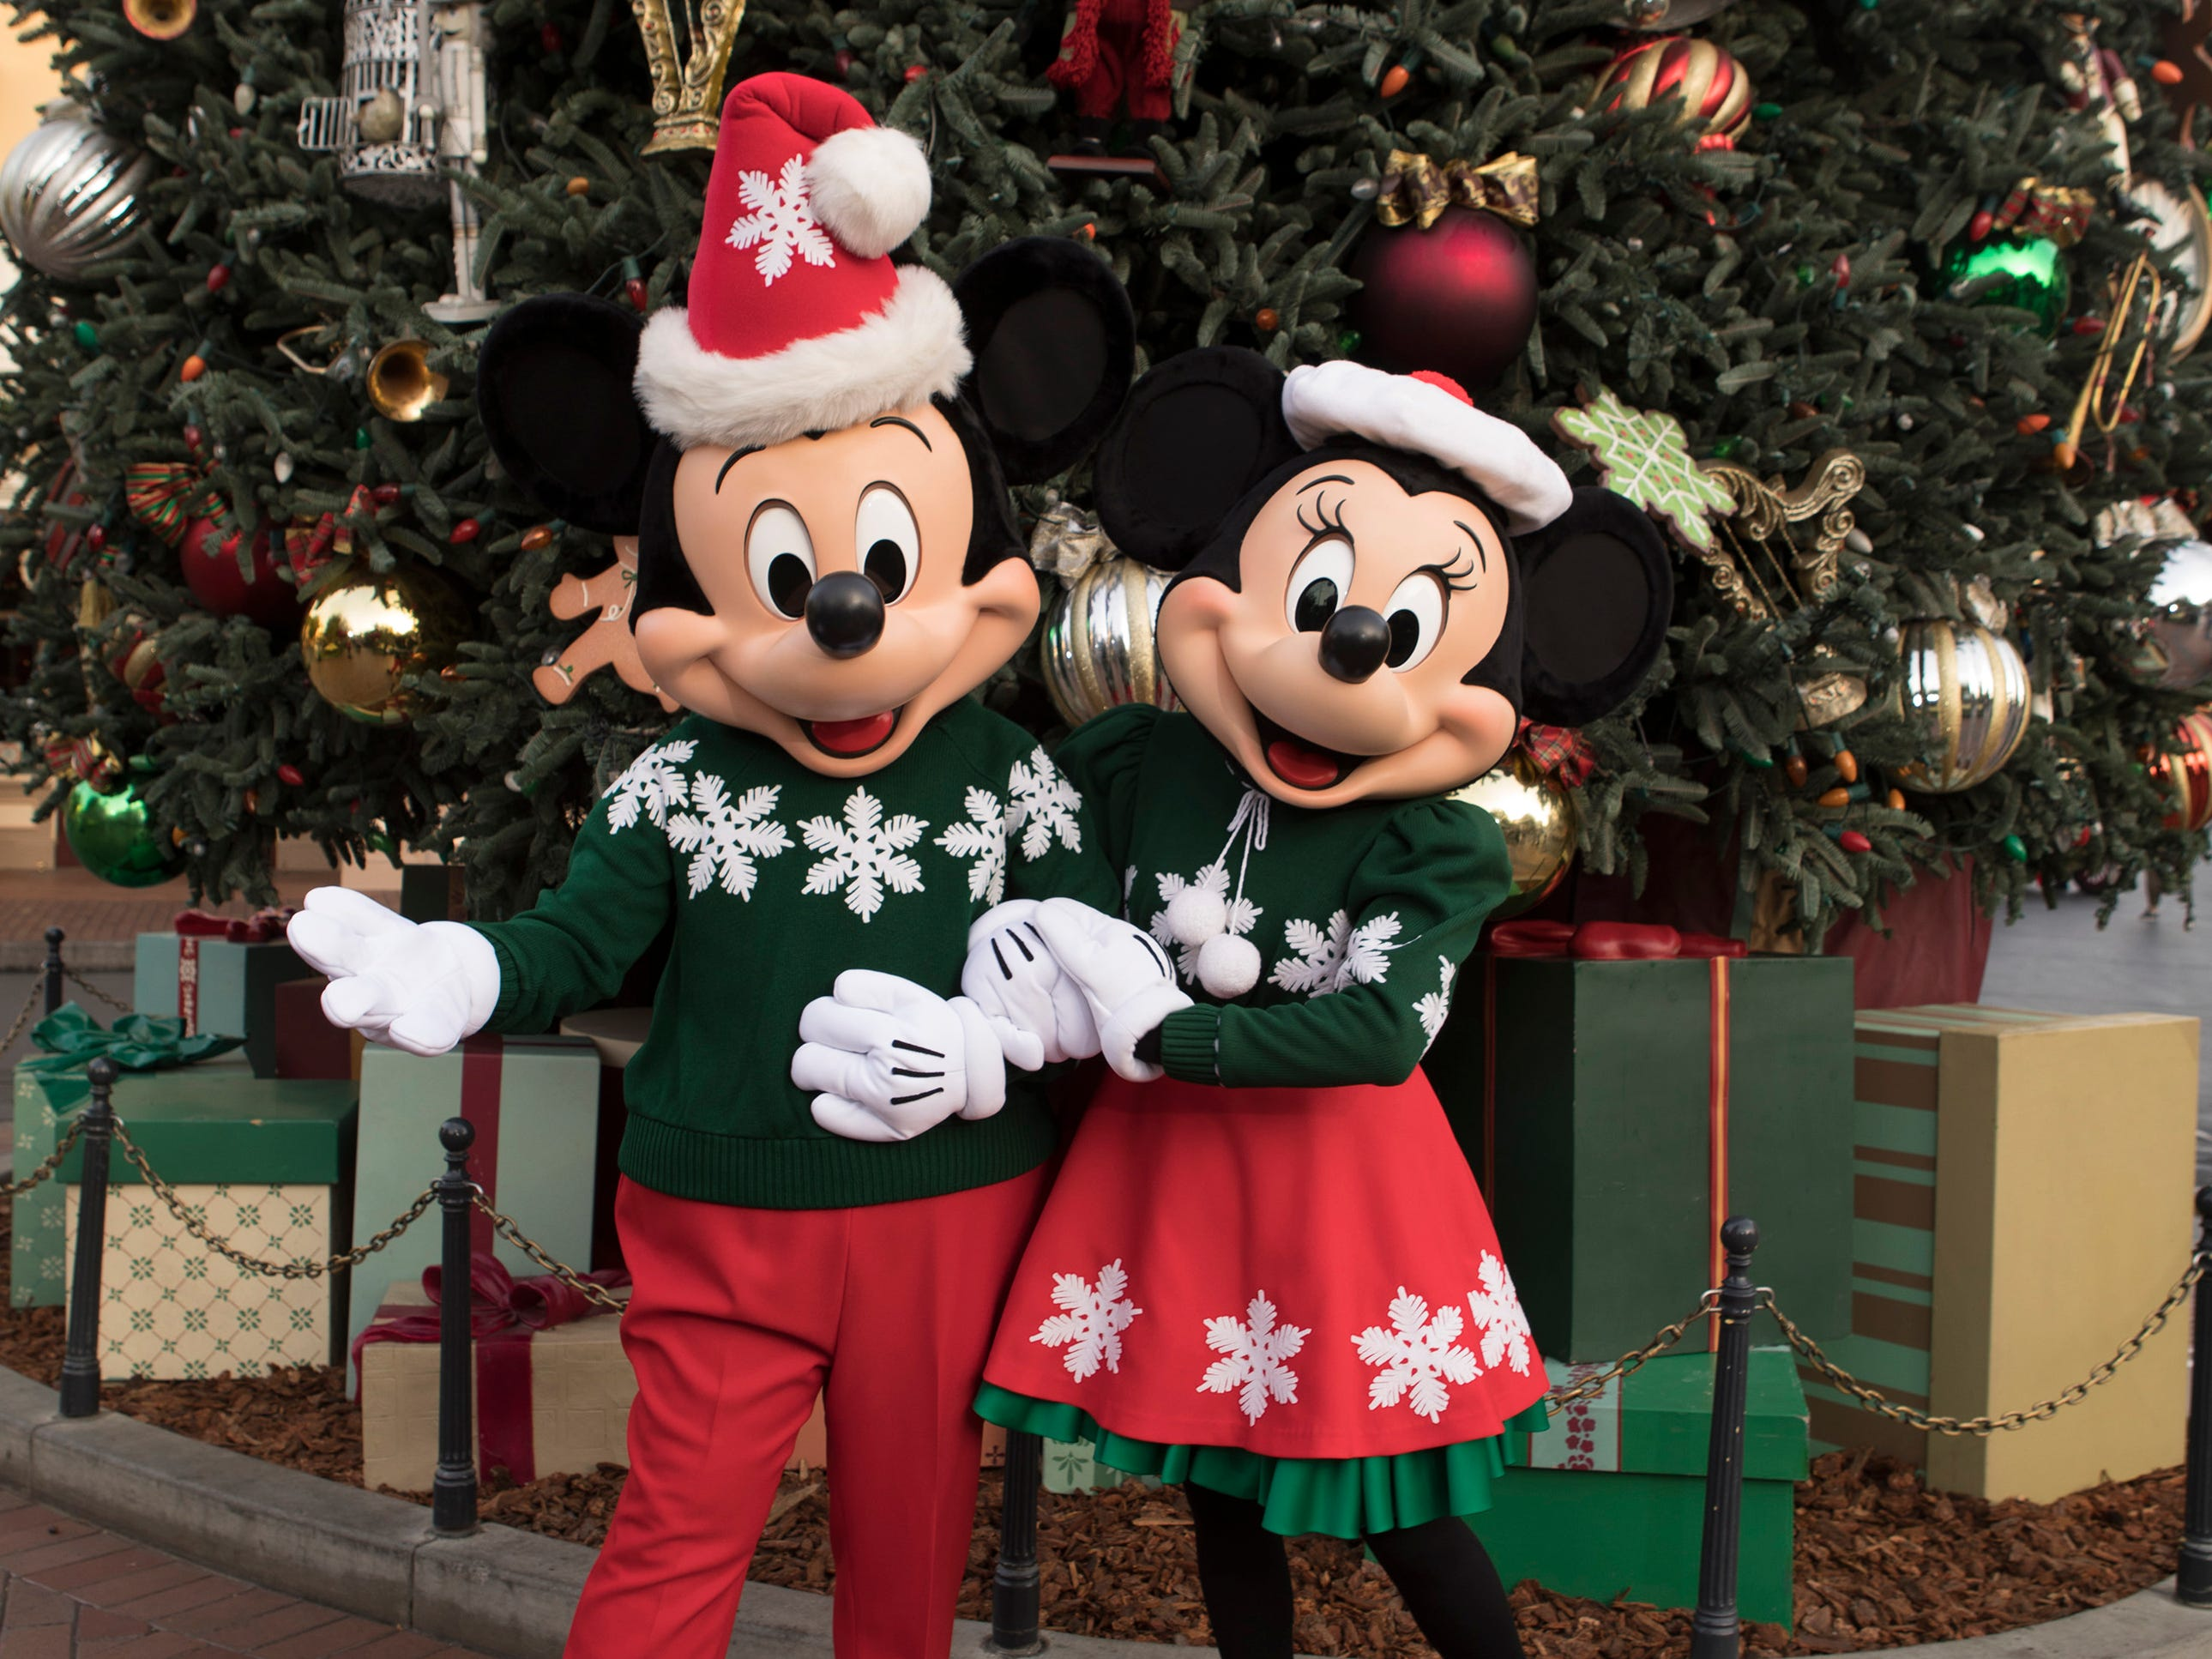 "Holidays at the Disneyland Resort returns Nov. 9, 2018 through Jan. 6, 2019, featuring seasonal offerings that include Festival of Holidays and ""Believe … in Holiday Magic"" fireworks spectacular, plus guest favorites including ""it's a small world"" Holiday and Haunted Mansion Holiday. Glistening Christmas trees and beautiful seasonal décor adorn the entire Disneyland Resort."